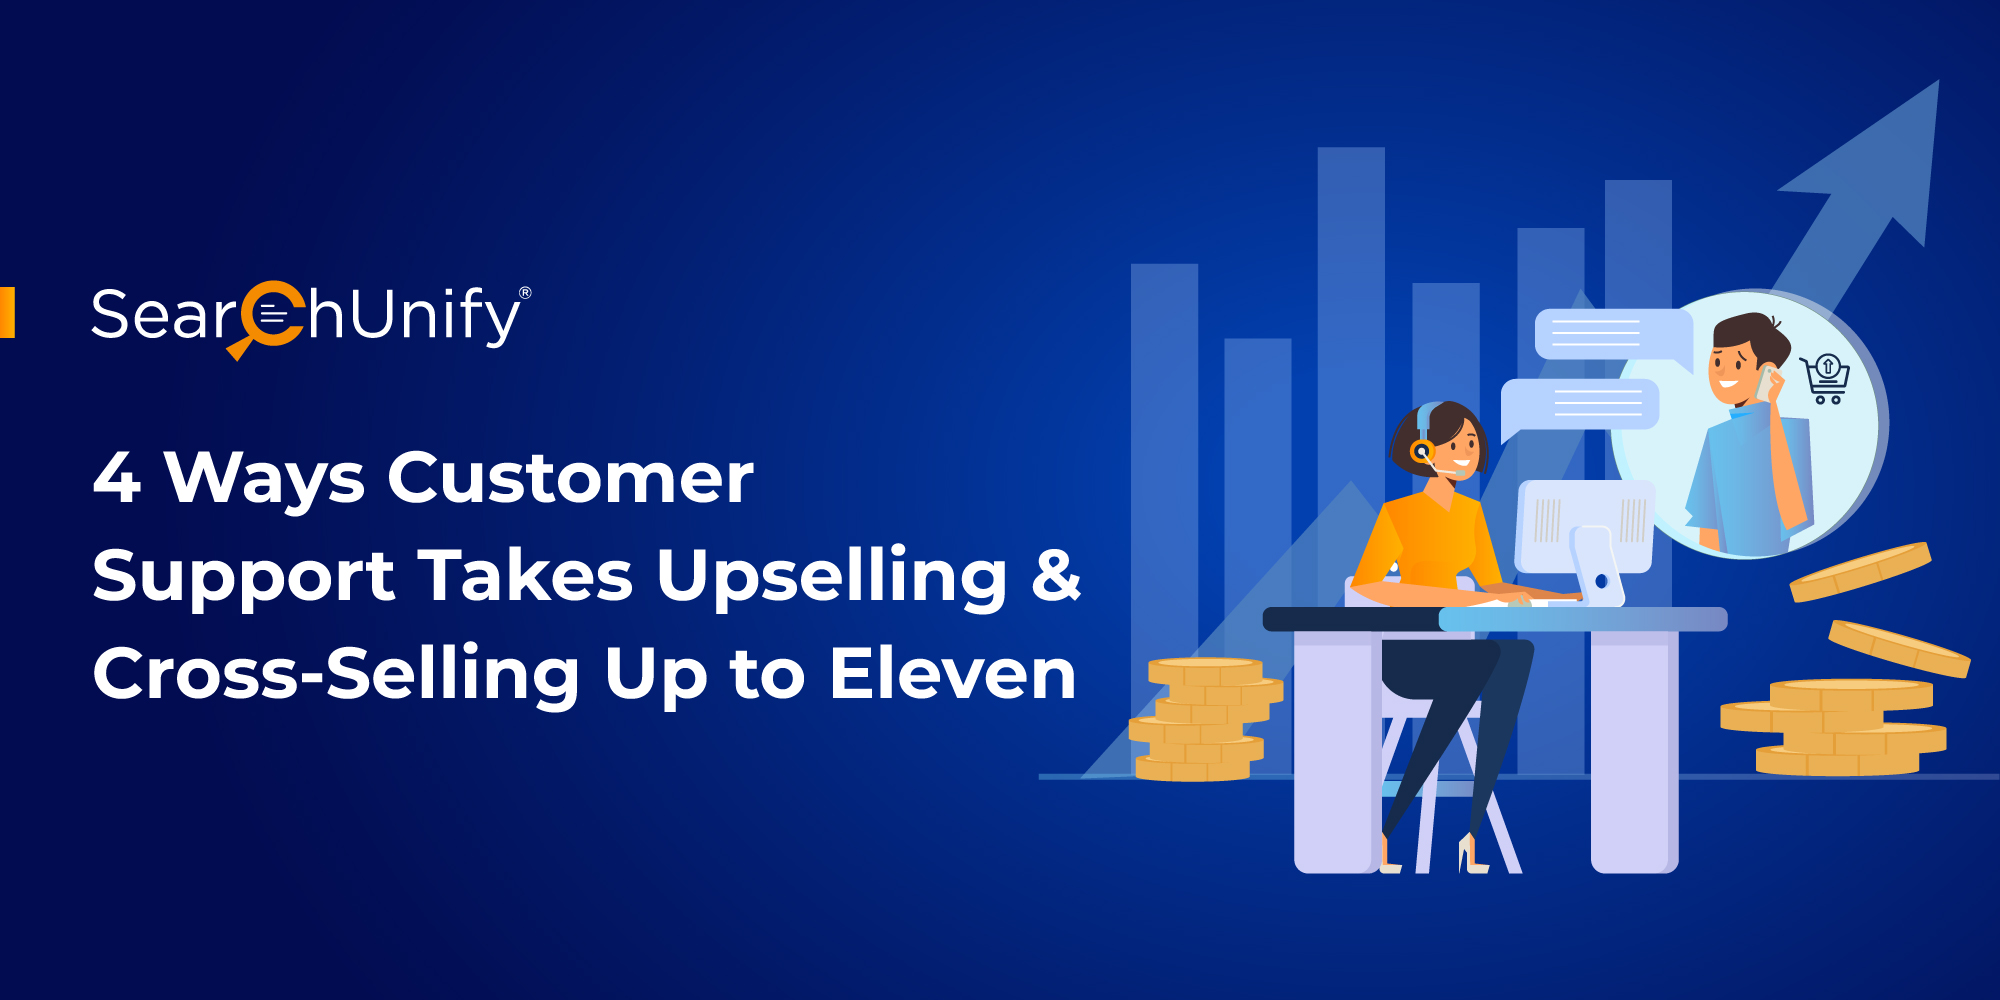 4 Ways Customer Support Takes Upselling & Cross-Selling Up to Eleven